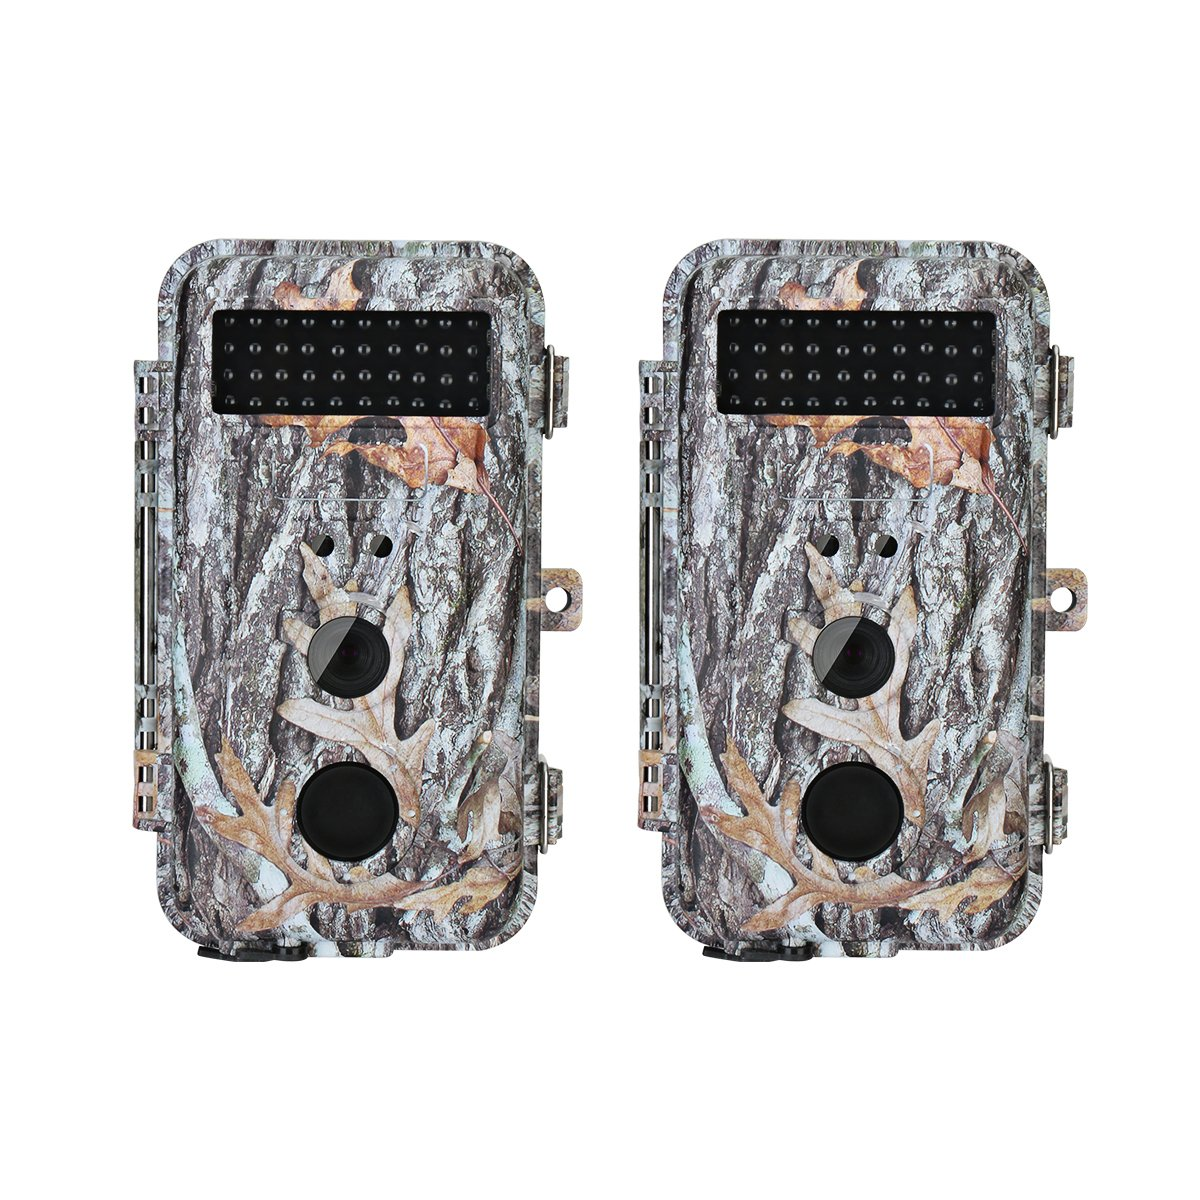 BlazeVideo 2-Pack 16MP No Glow Hunting Trail Wildlife Cameras, Hunters Camo Scouting Game Cam Motion Sensor Activated Waterproof Night Vision 40pcs IR LED & PIR, 2.36'' LCD Screen, High Trigger Speed